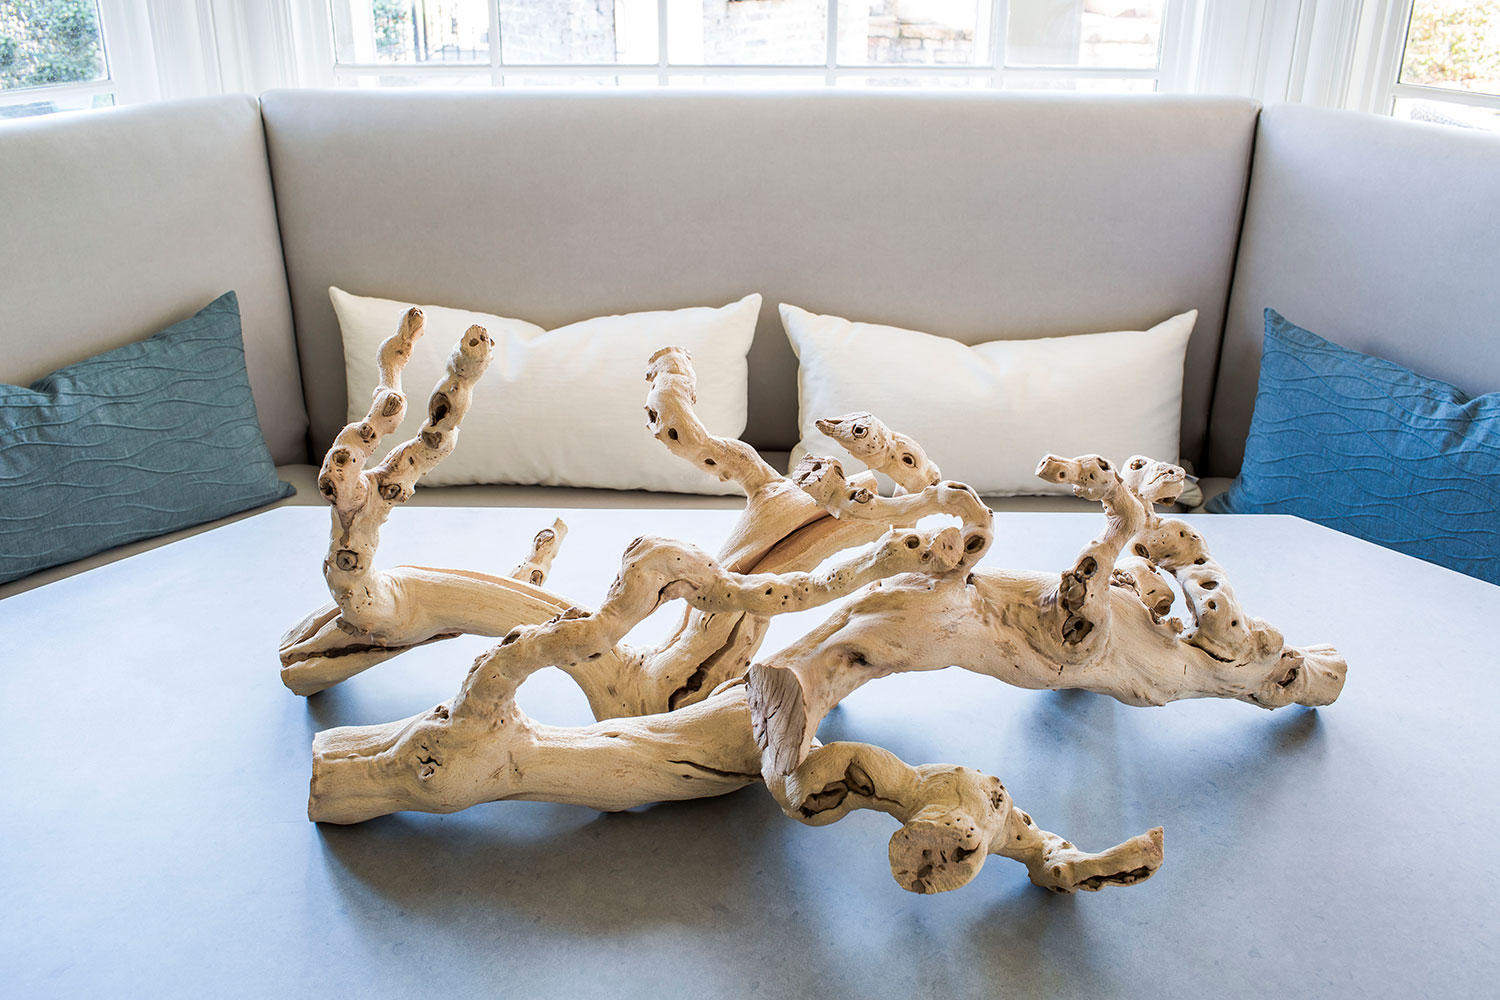 Driftwood accessorizes the breakfast nook table